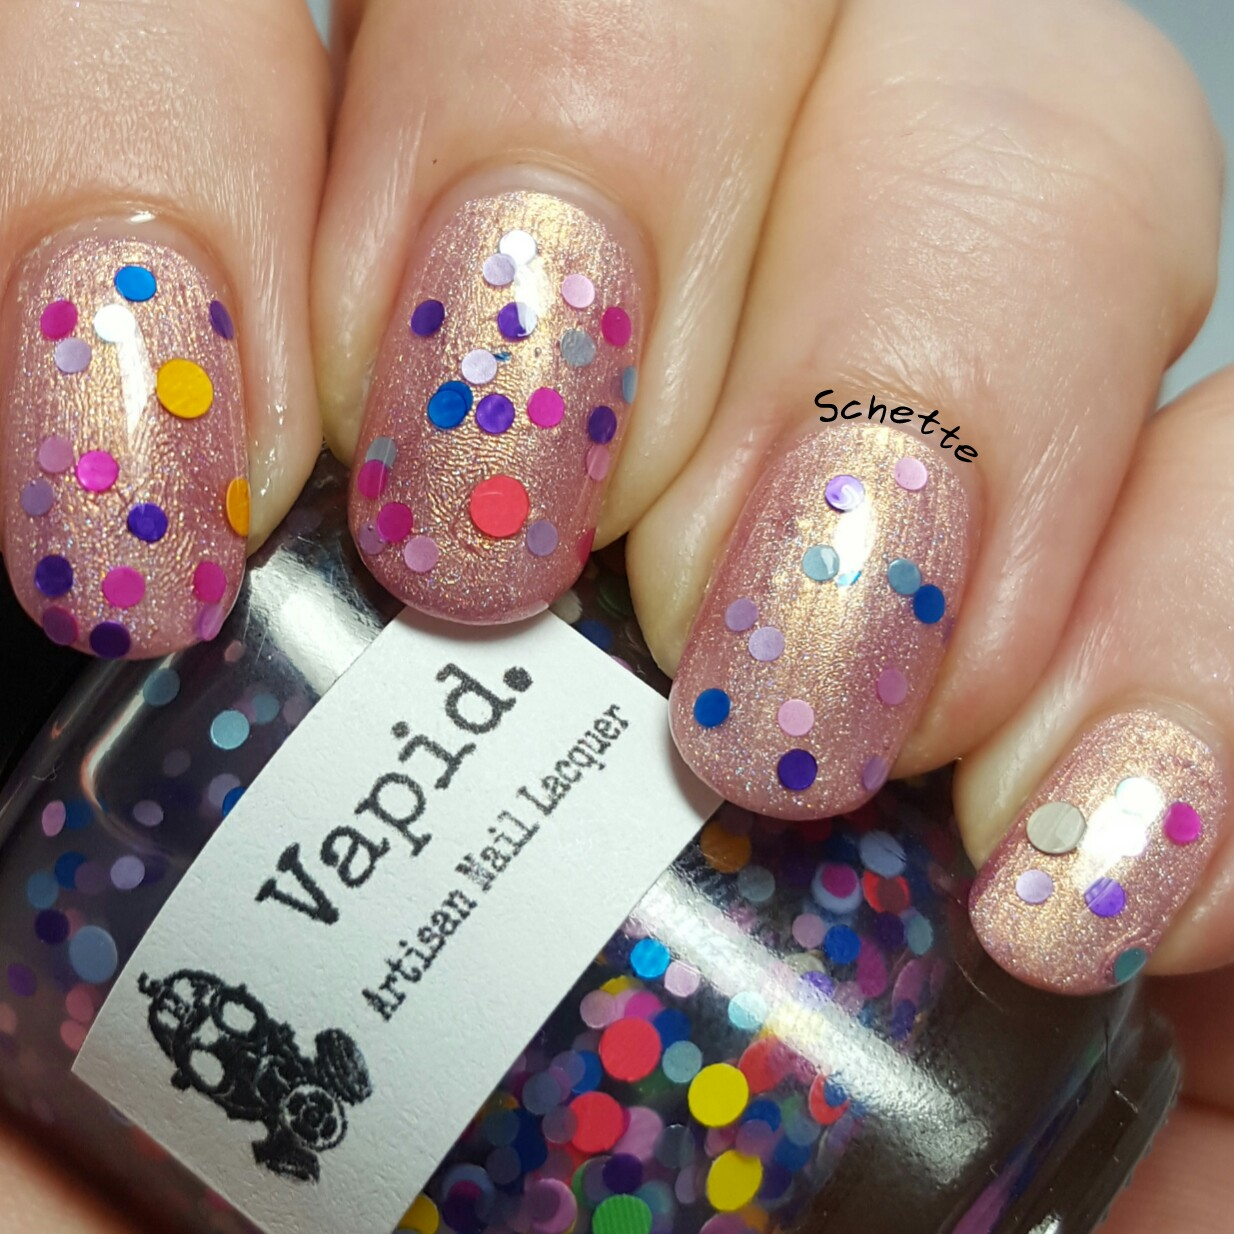 Vapid Lacquer - Seeing spots